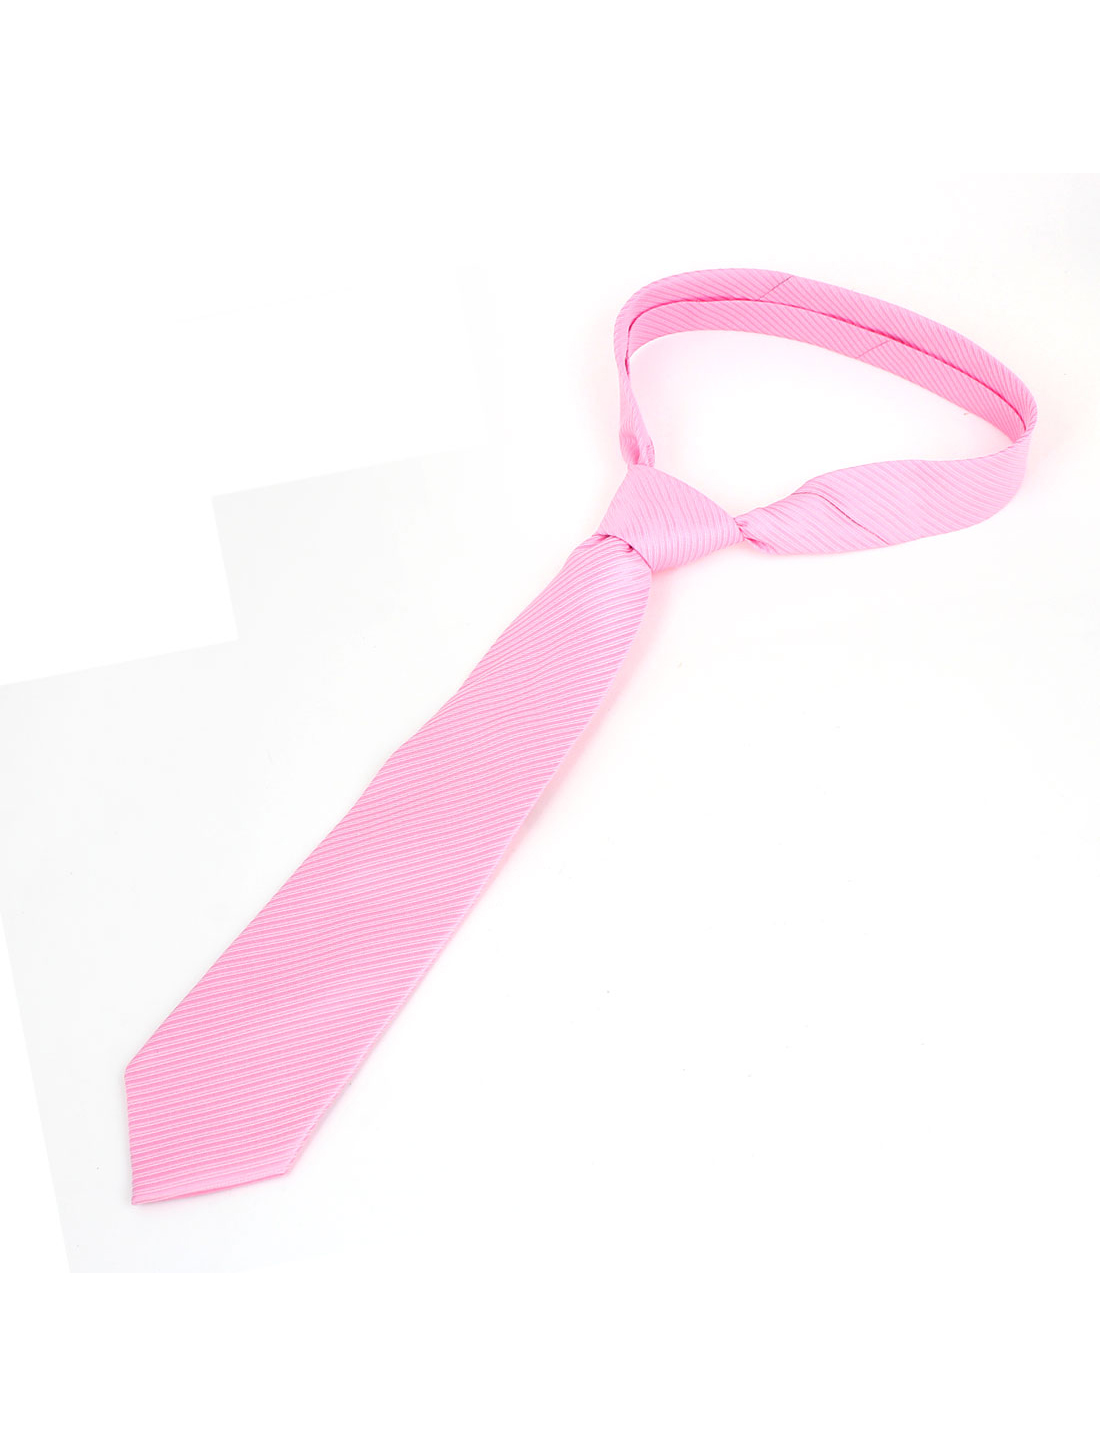 Men Twill Stripes Design Polyester Self Tie Adjustable Neckwear Necktie Light Pink